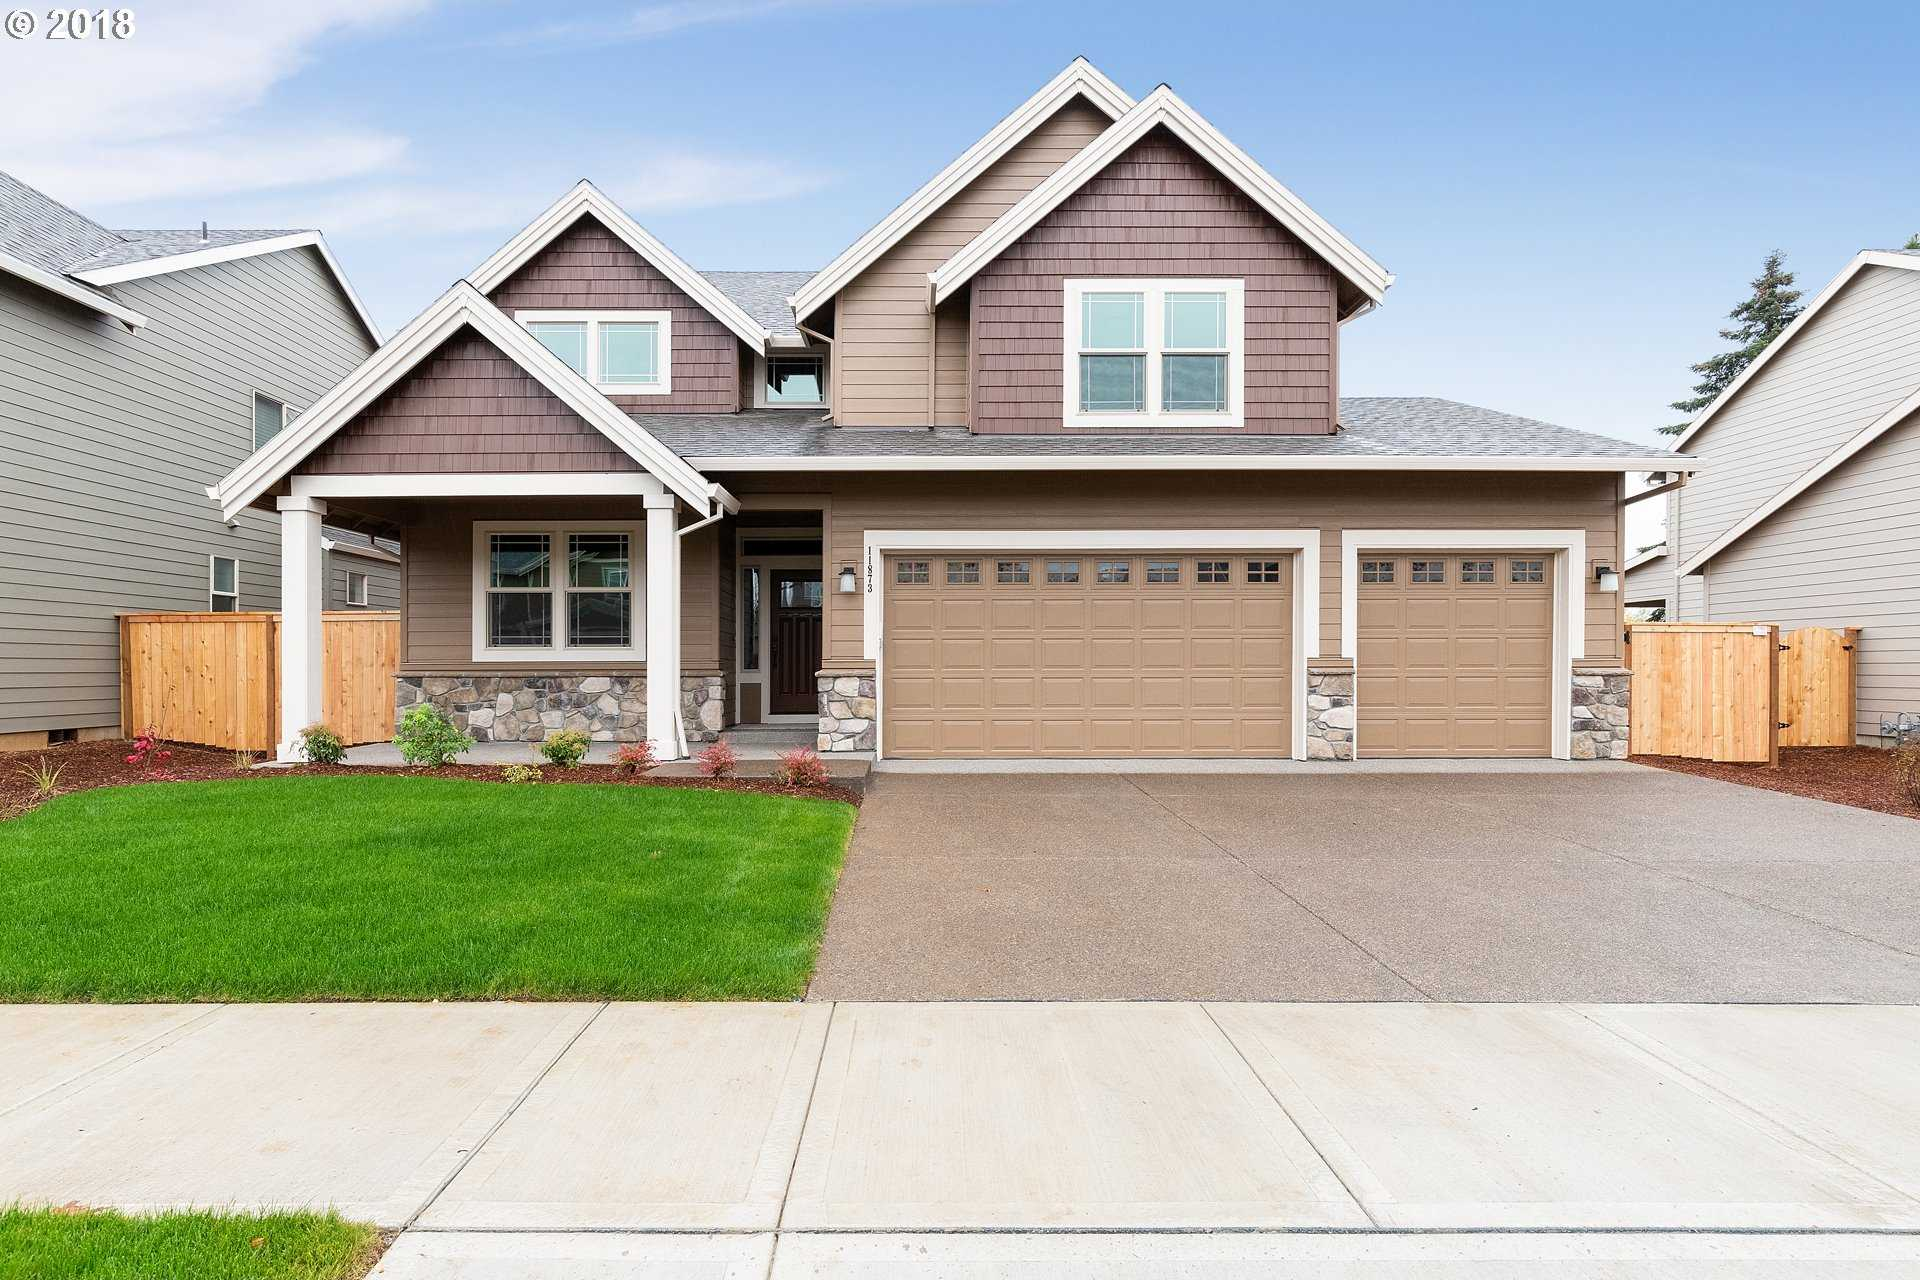 $549,911 - 4Br/3Ba -  for Sale in Ed's Orchard, Oregon City